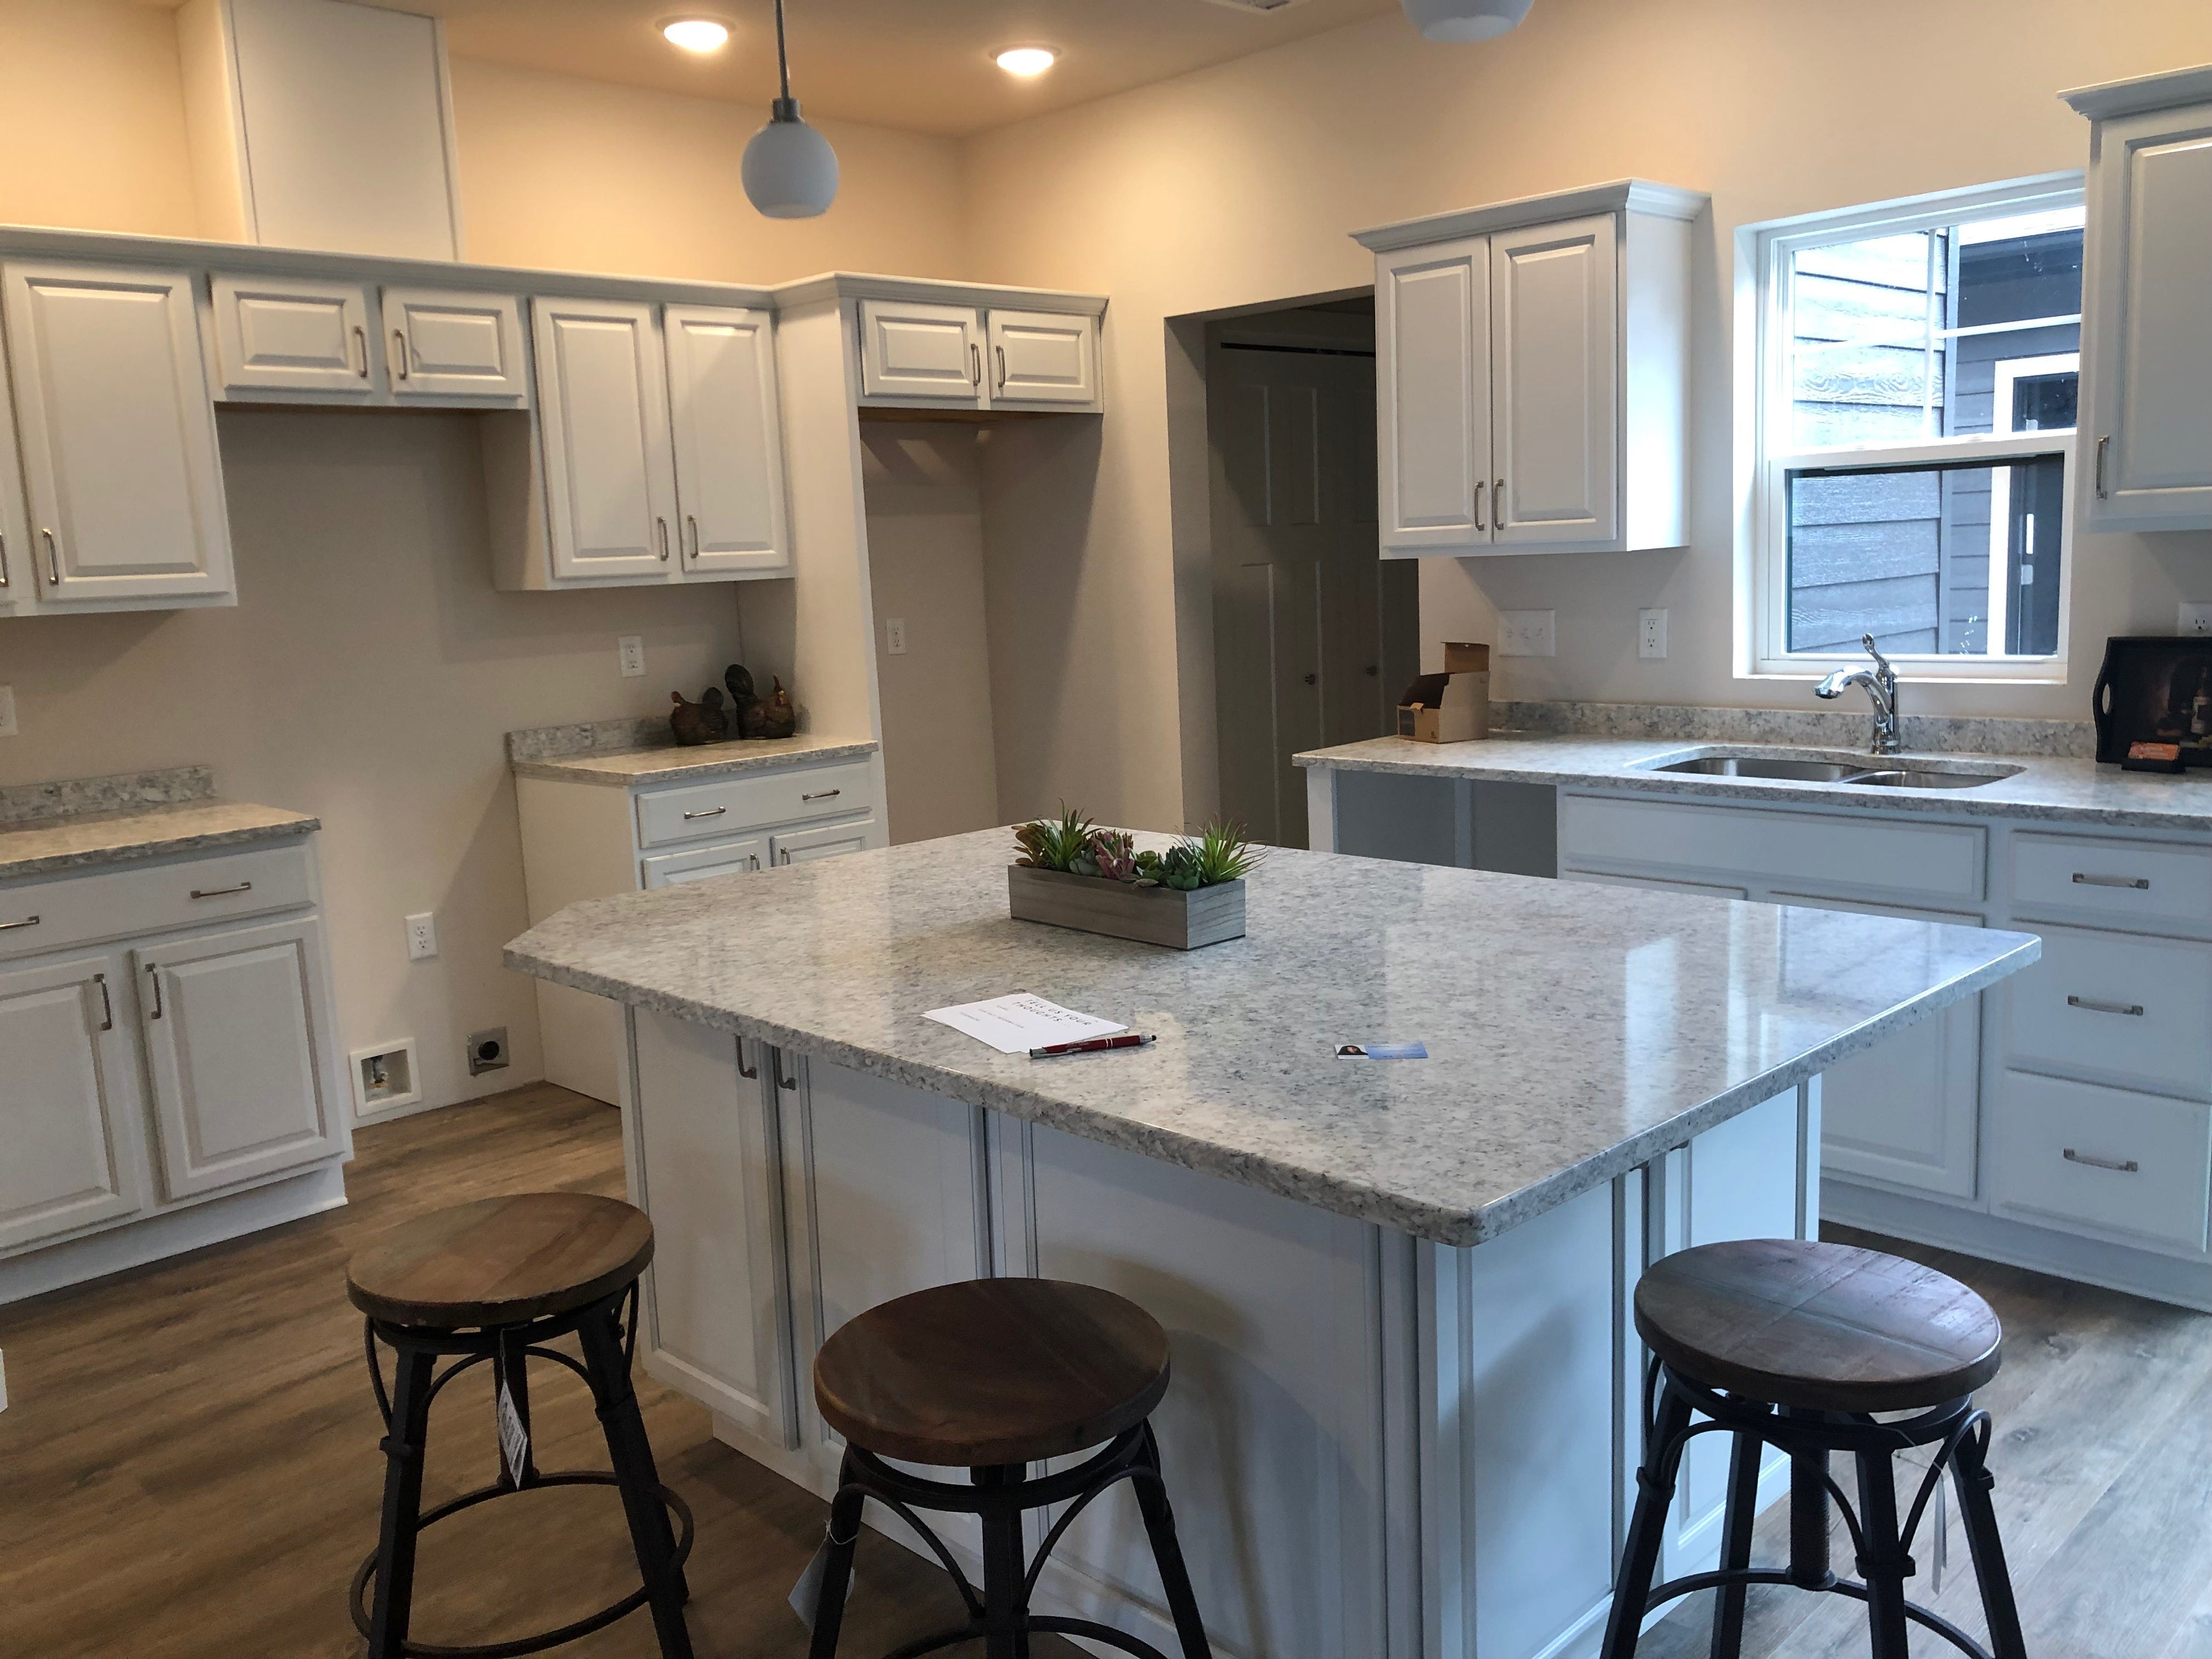 A kitchen in the River East Town Homes in Wausau.